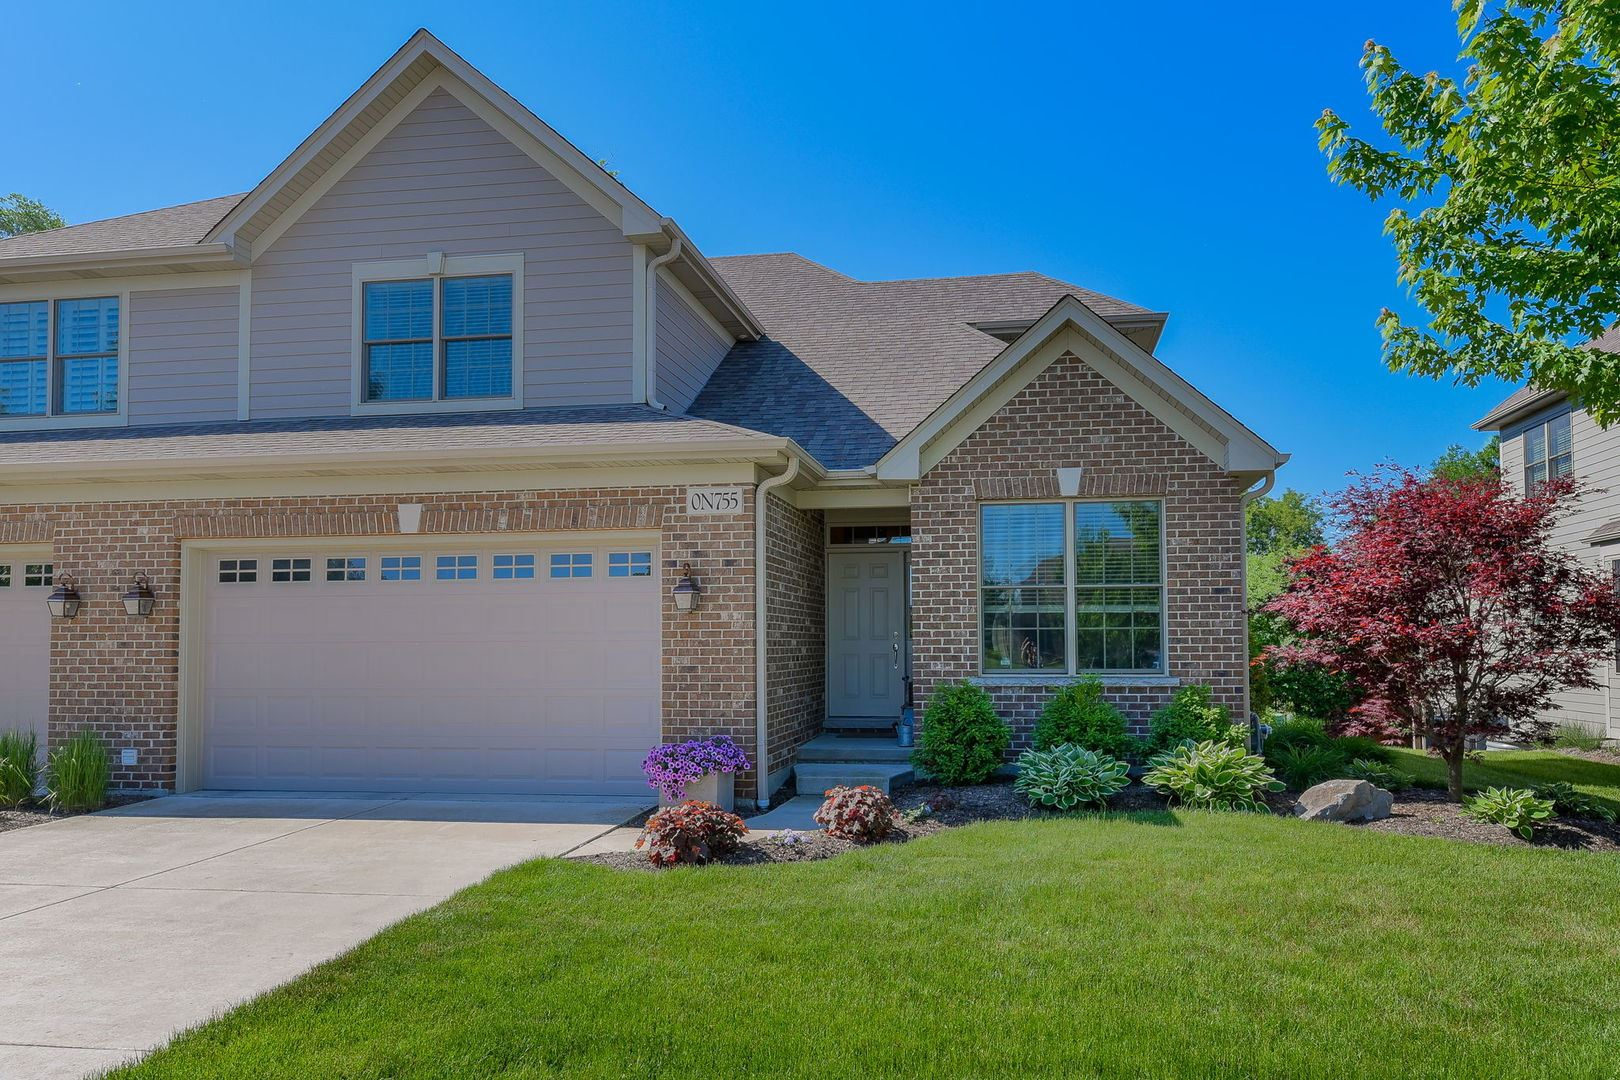 0N755 Waverly Court, Wheaton, IL 60187 - #: 10744348